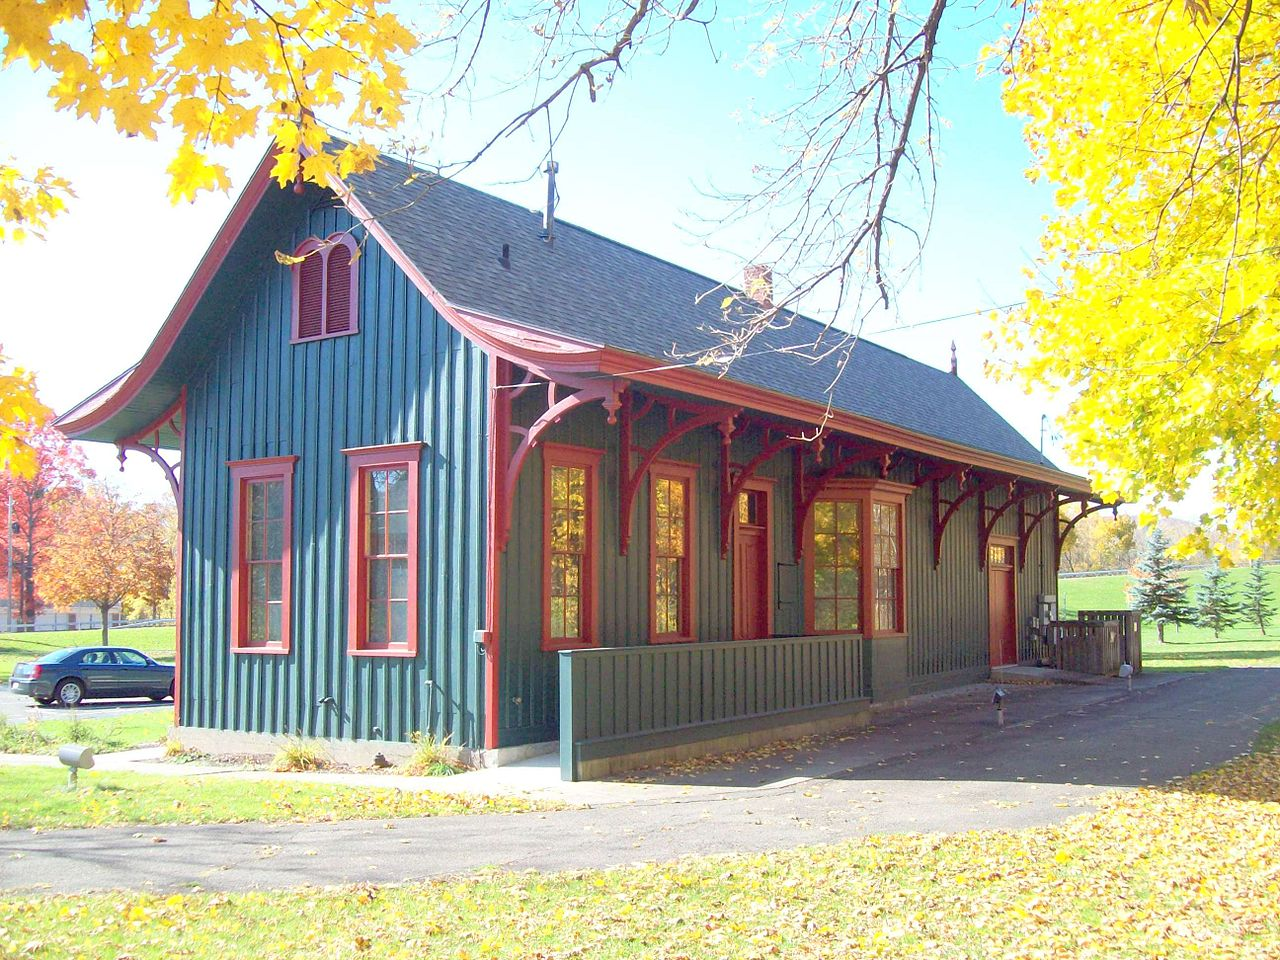 The Painted Post-Erwin Museum at the Depot was built in 1882 and today houses a museum operated by the Corning-Painted Post Historical Society.